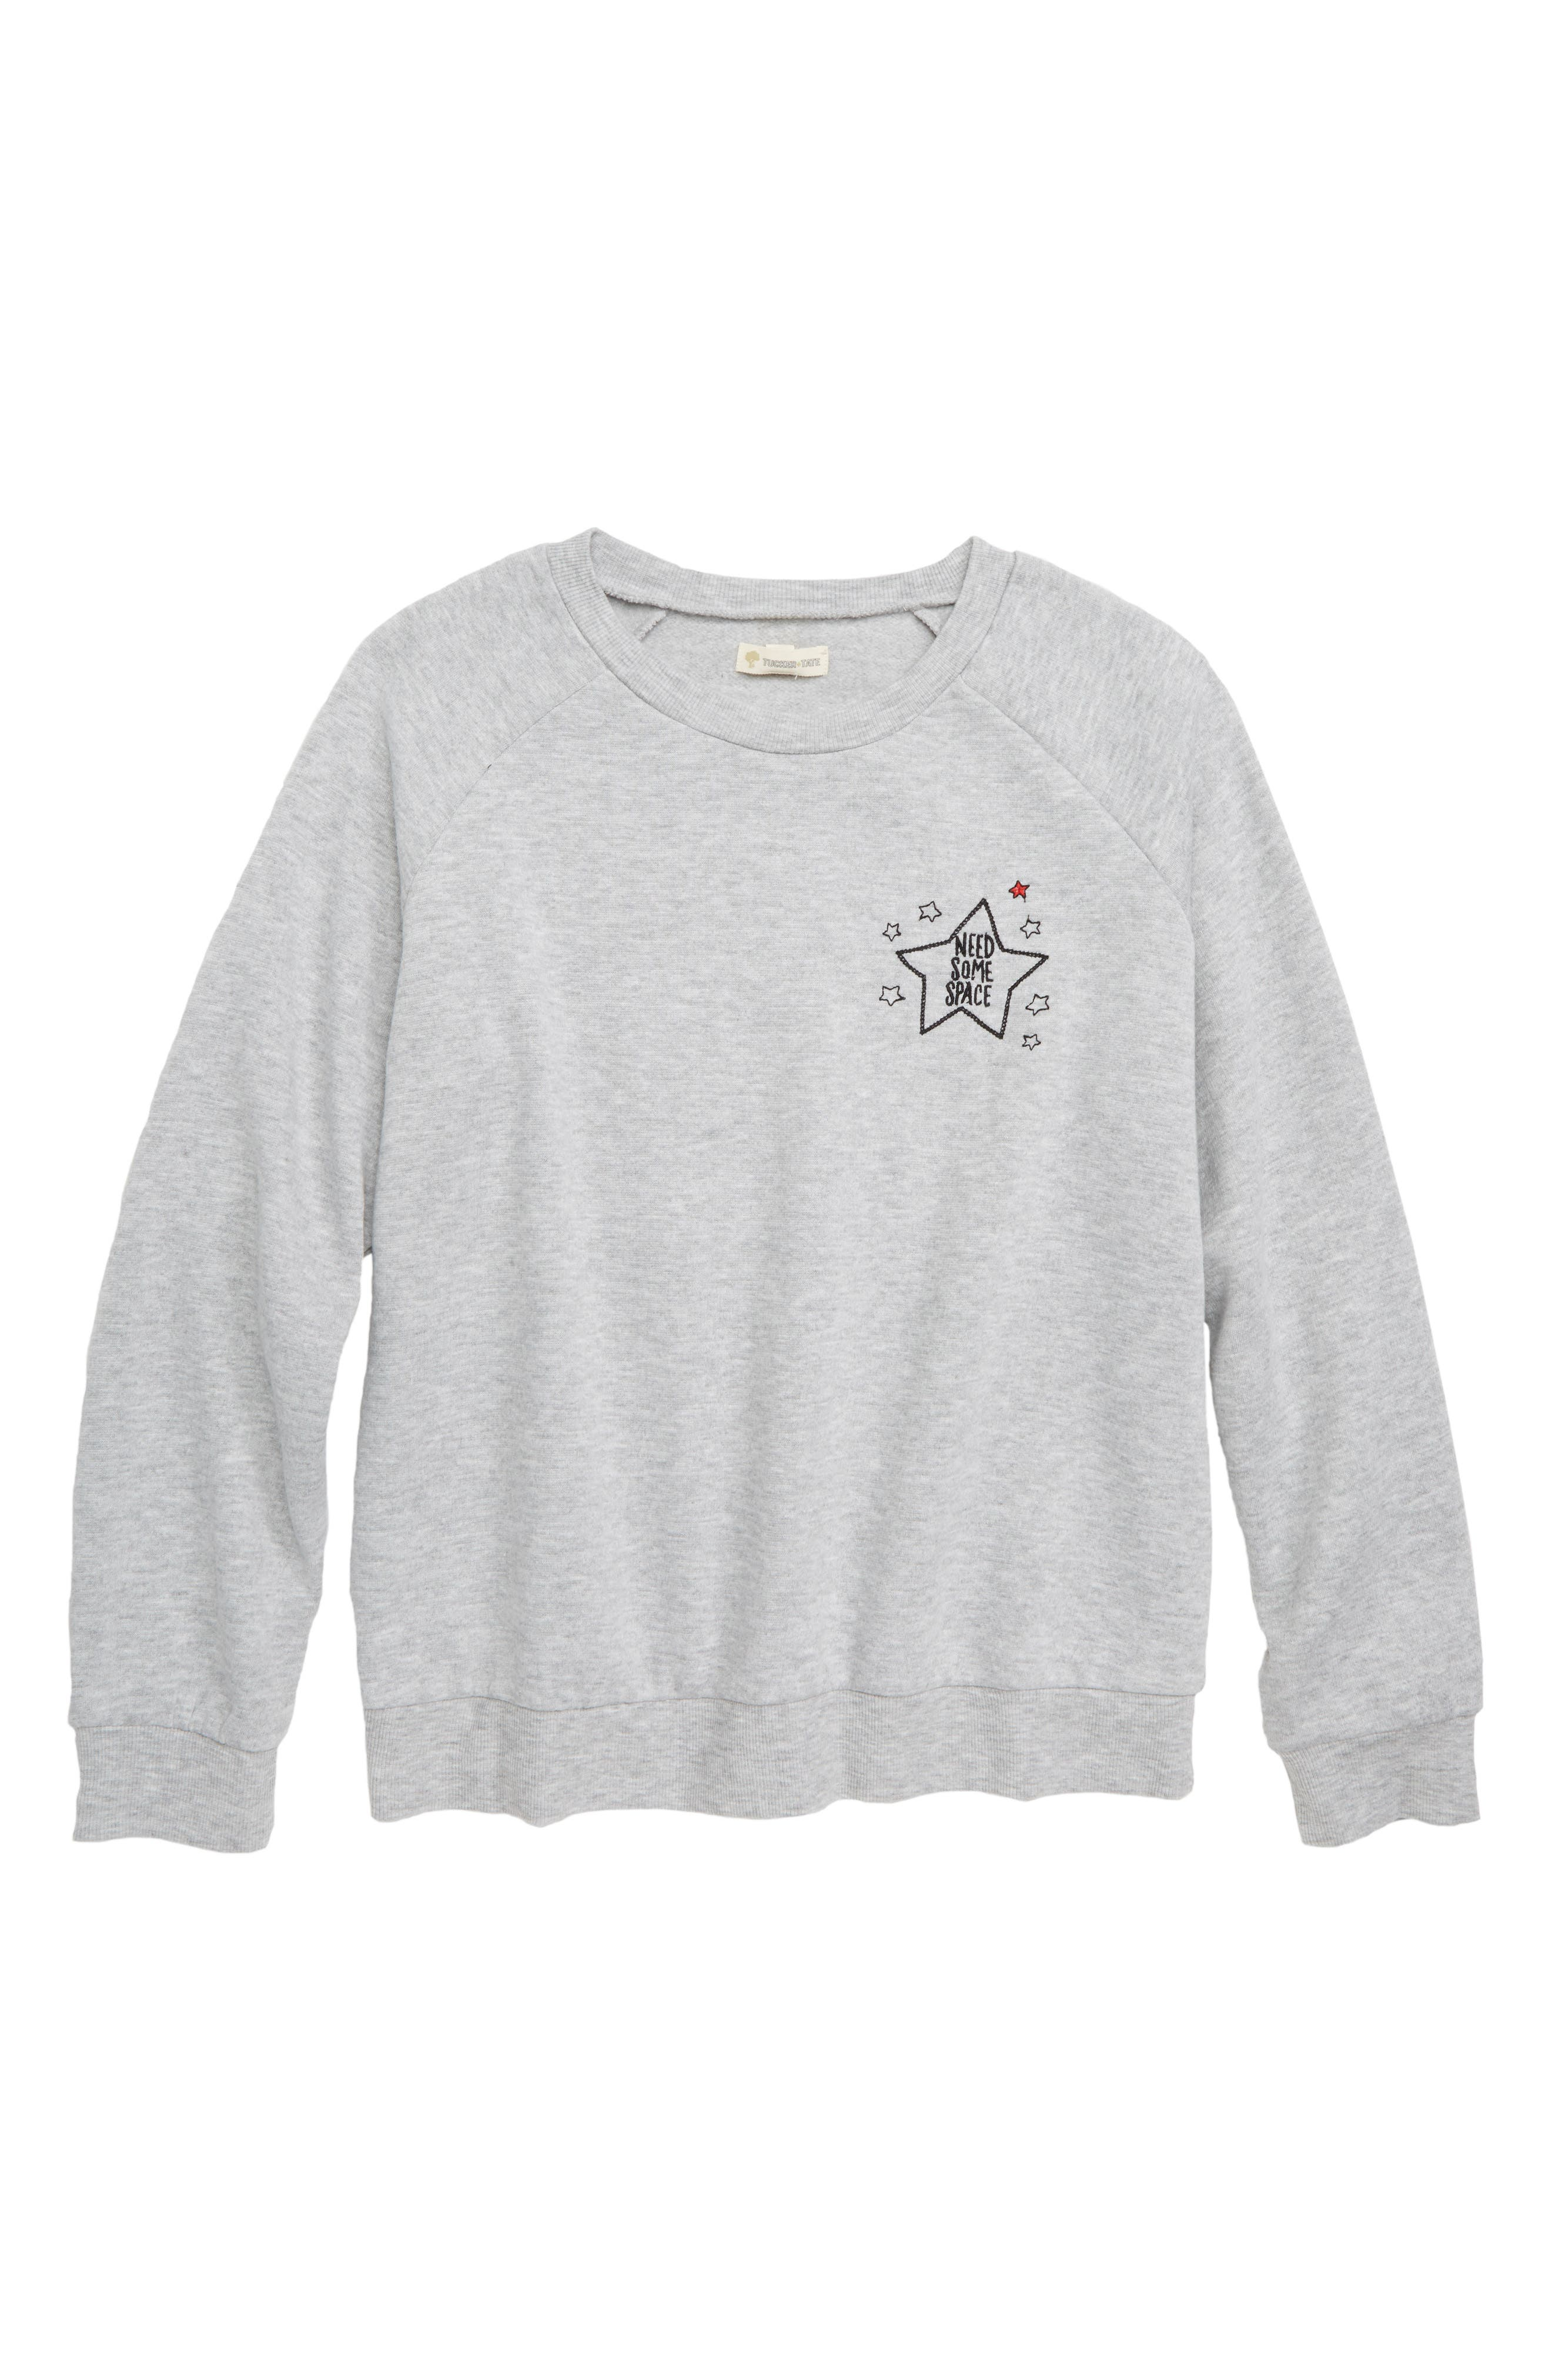 Need Some Space Embroidered Sweatshirt,                         Main,                         color, 050